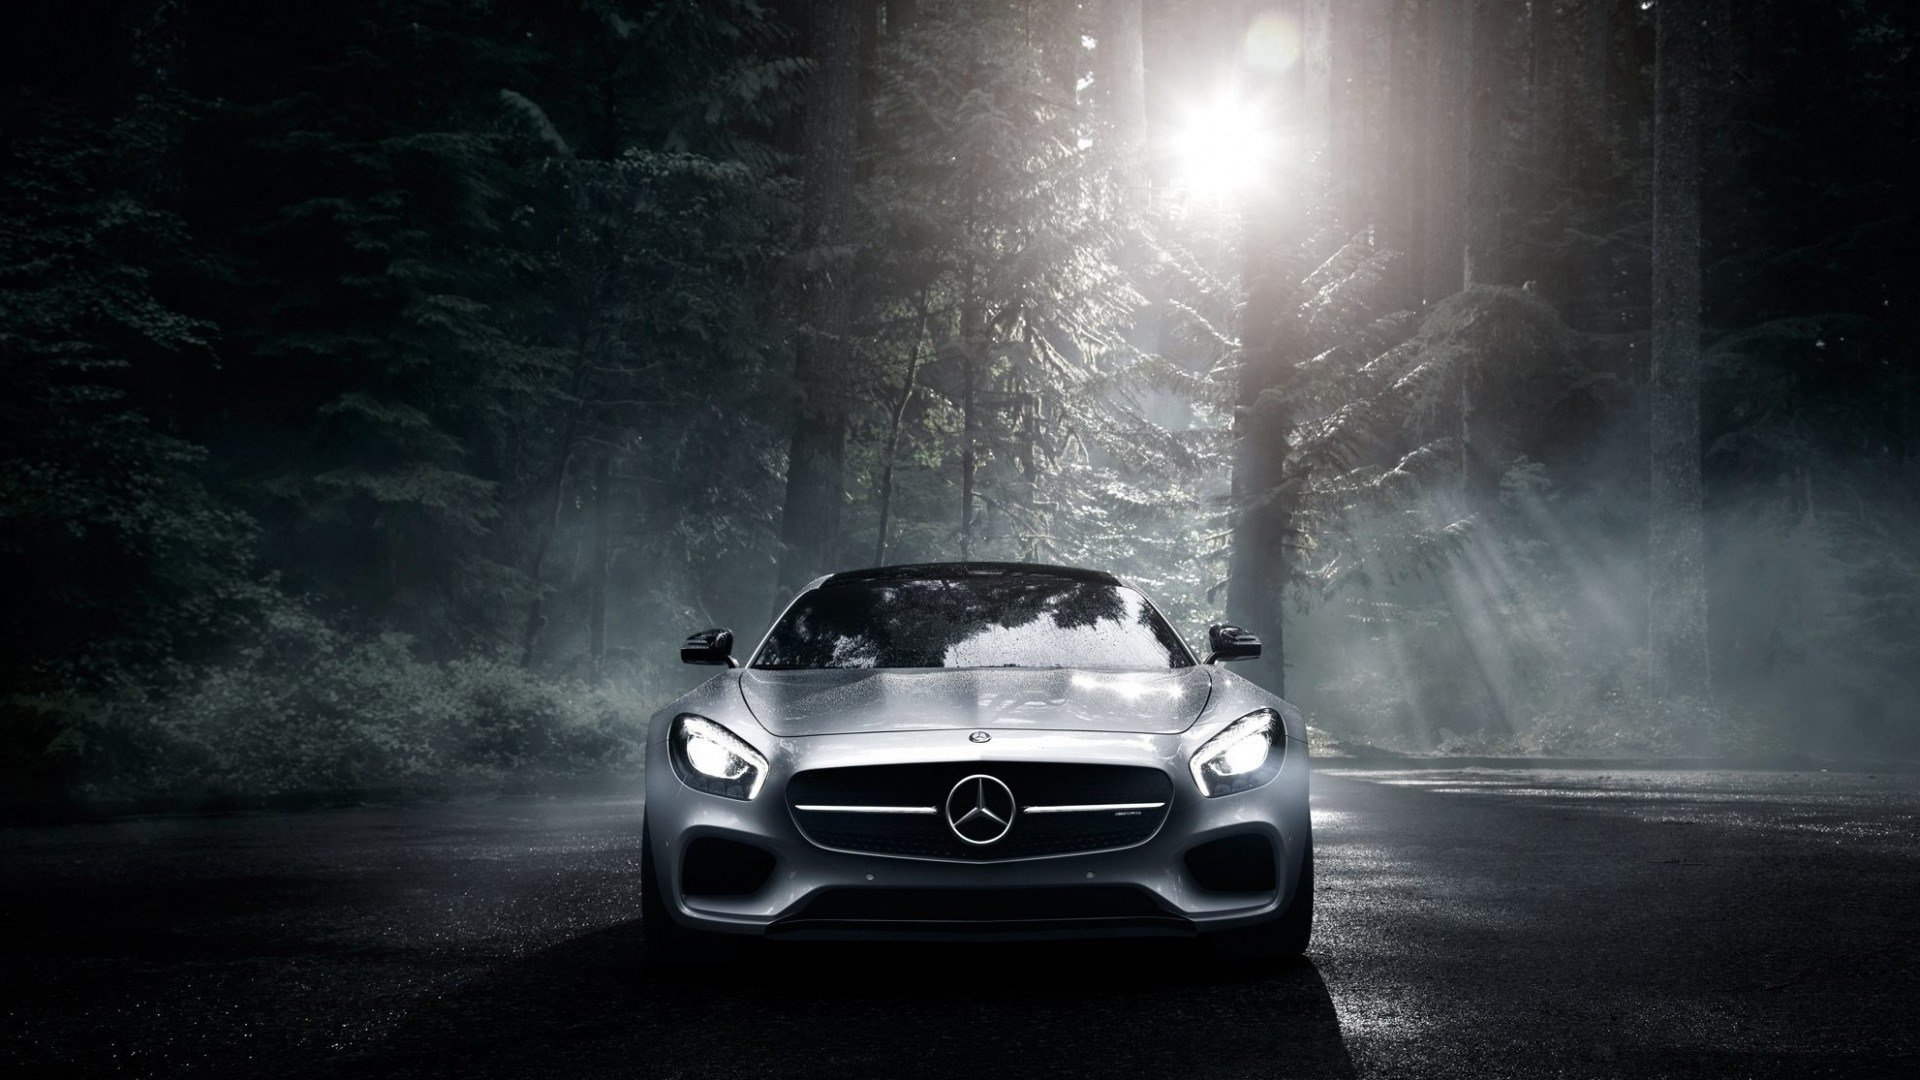 Latest Hd Car Wallpapers 1920X1080 62 Images Free Download